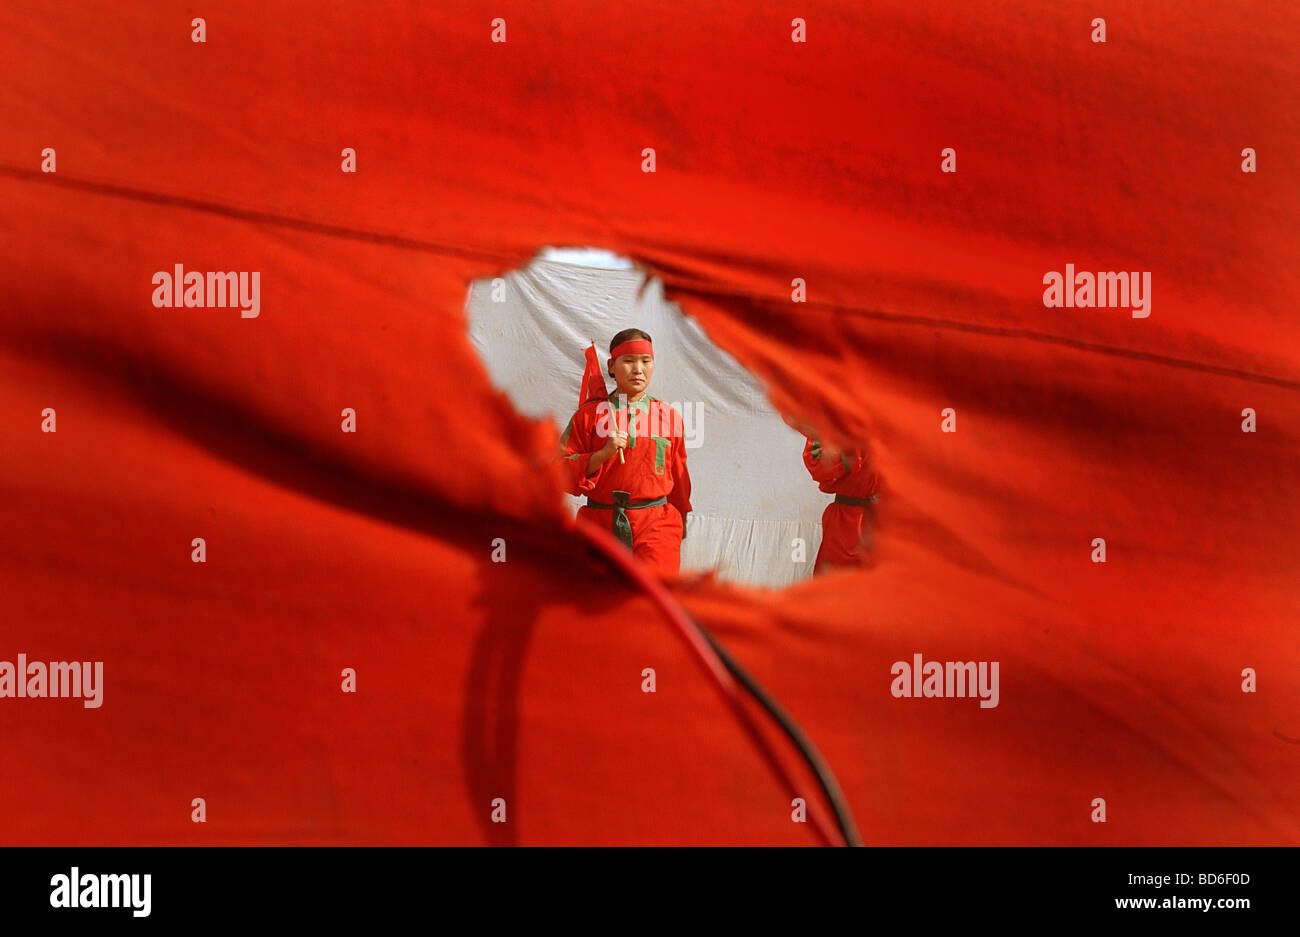 Maoists perform a traditional dance with Communist flags during a cultural program where over 1000 villagers came - Stock Image